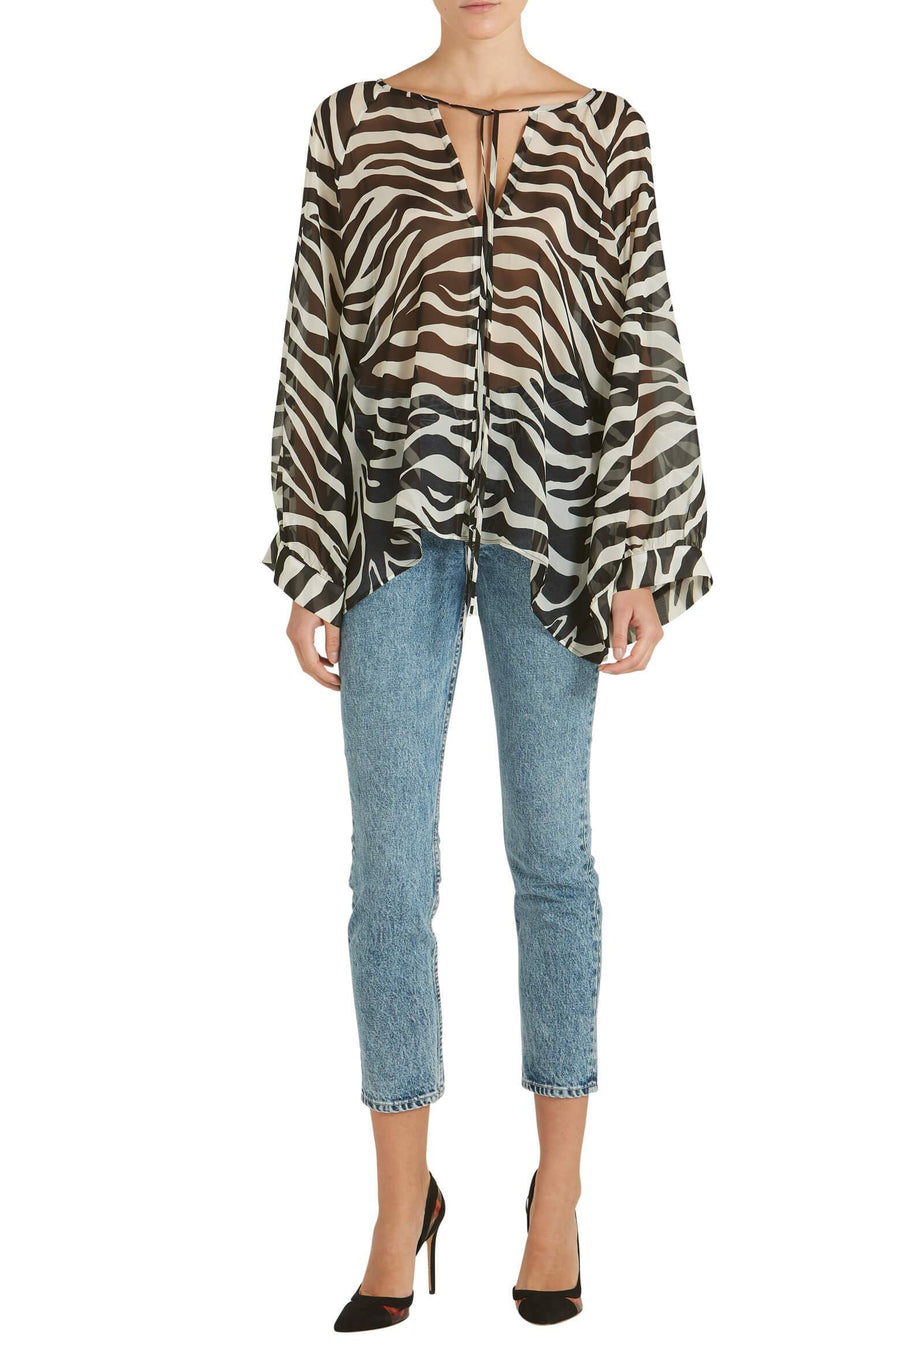 Nili Lotan Acadia Blouse in Ivory Tiger Print from The New Trend